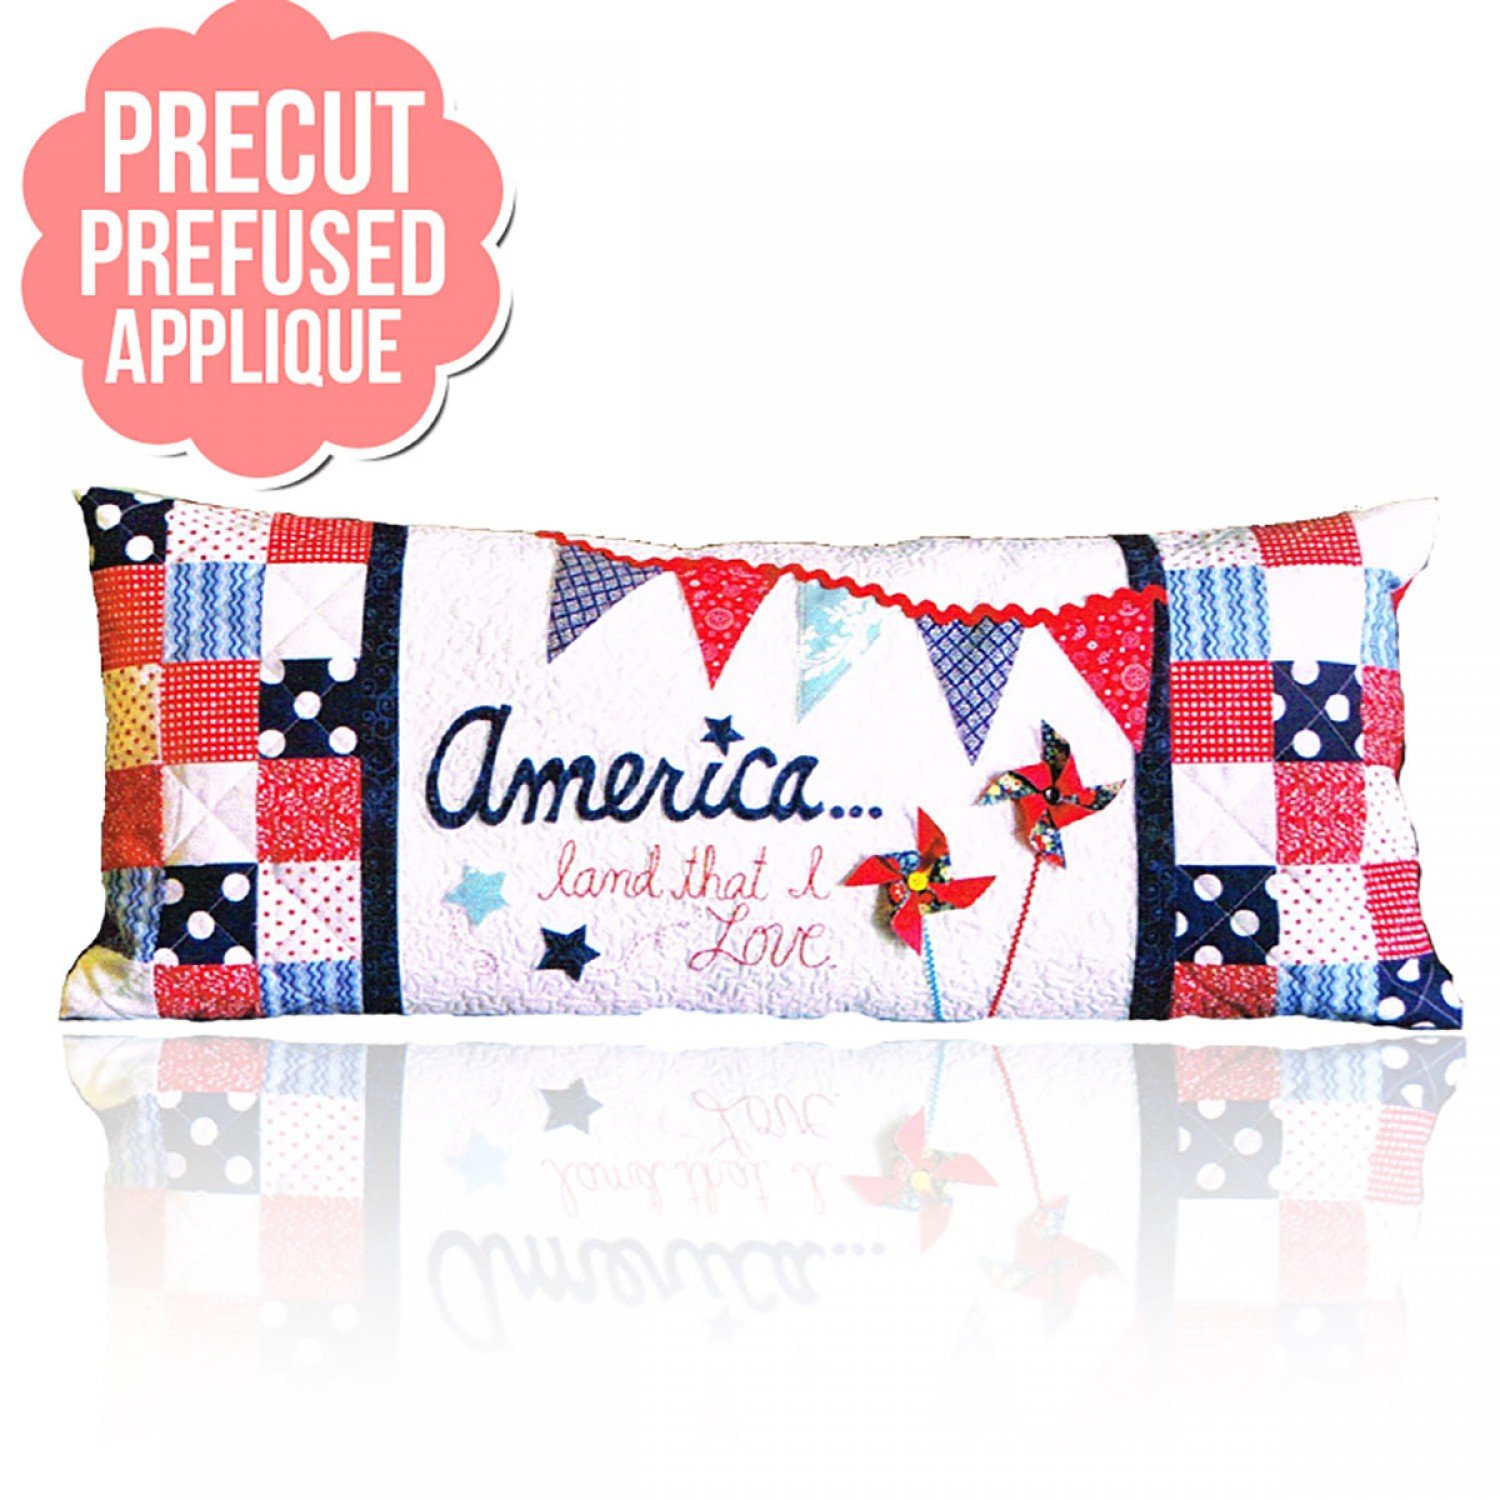 America Land That I Love Pre-Cut and Pre-Fused Appliques Kit